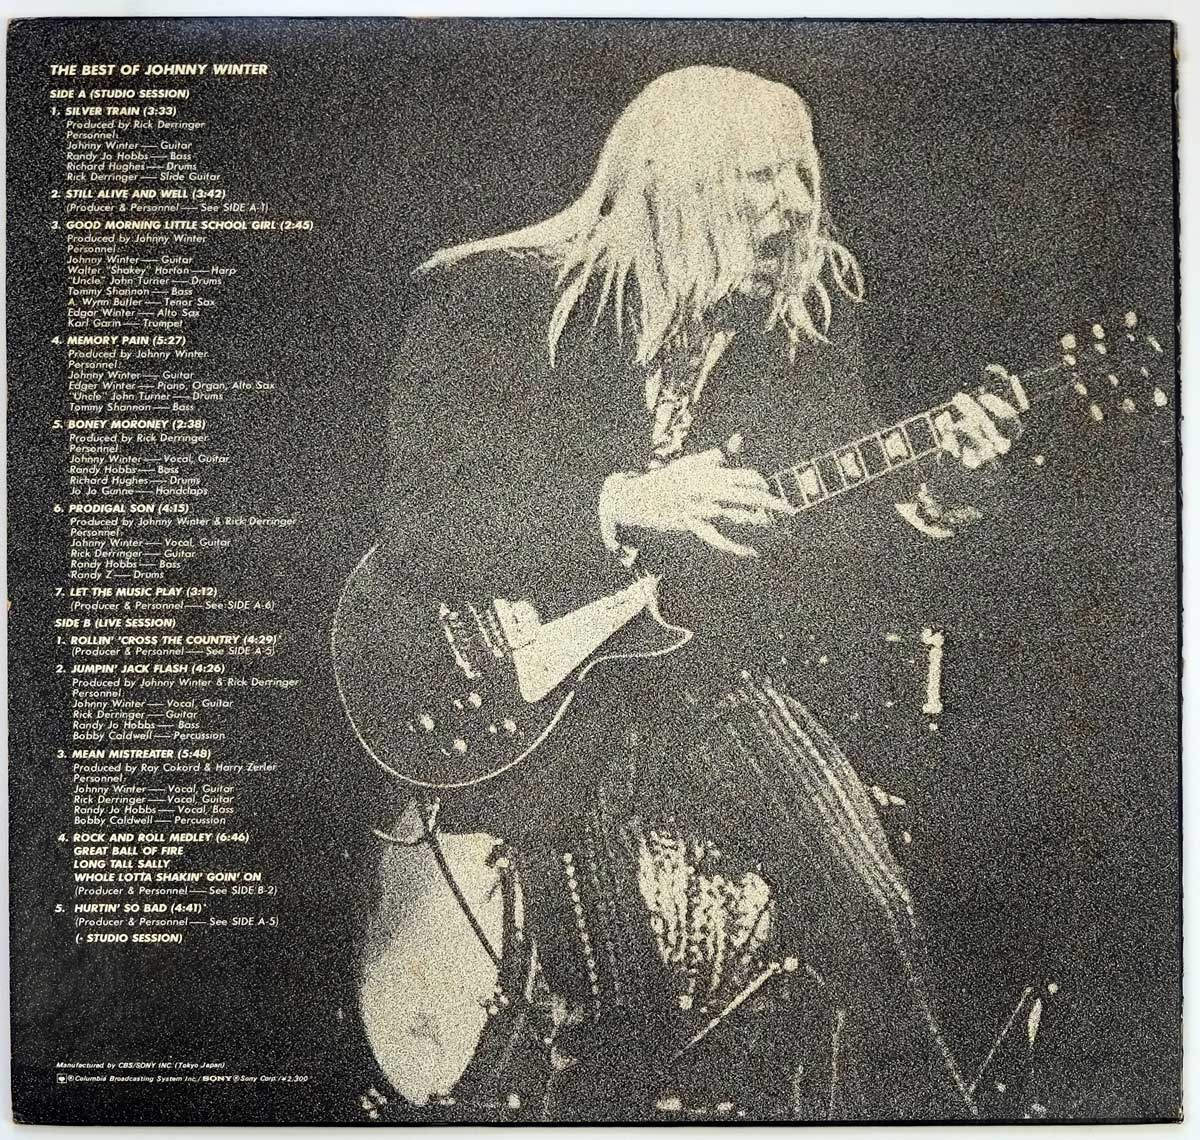 Johnny Winter playing a Gibson Les Paul Guitar on the Album Back Cover  Photo